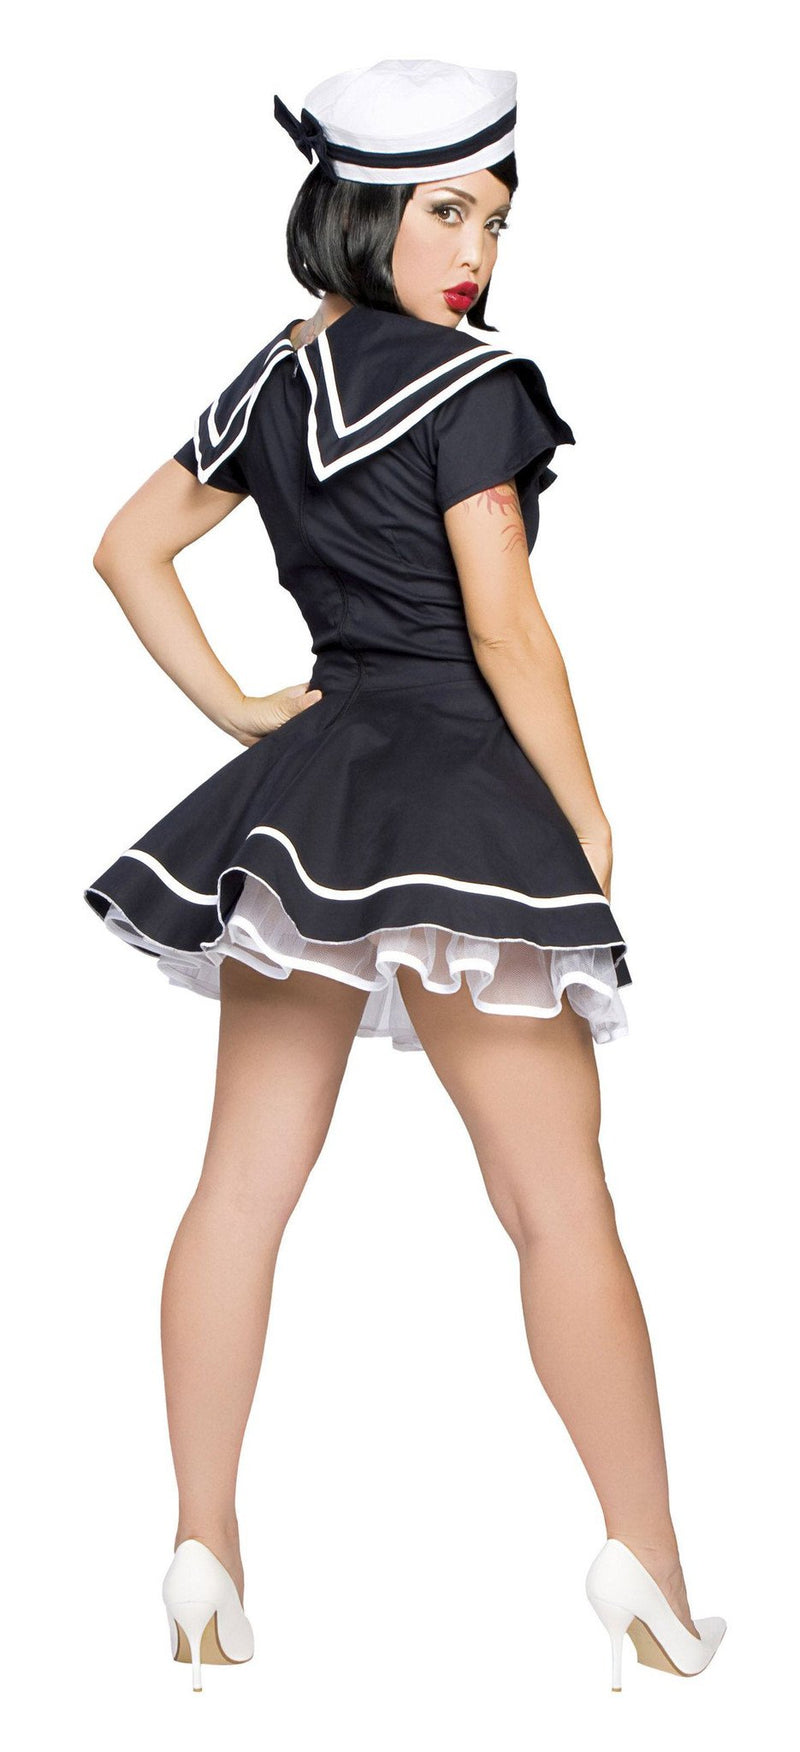 Buy 4094 - 2Pc Pin-Up Captain from Rave Fix for $51.75 with Same Day Shipping Designed by Roma Costume, Inc. 4094-AS-XS